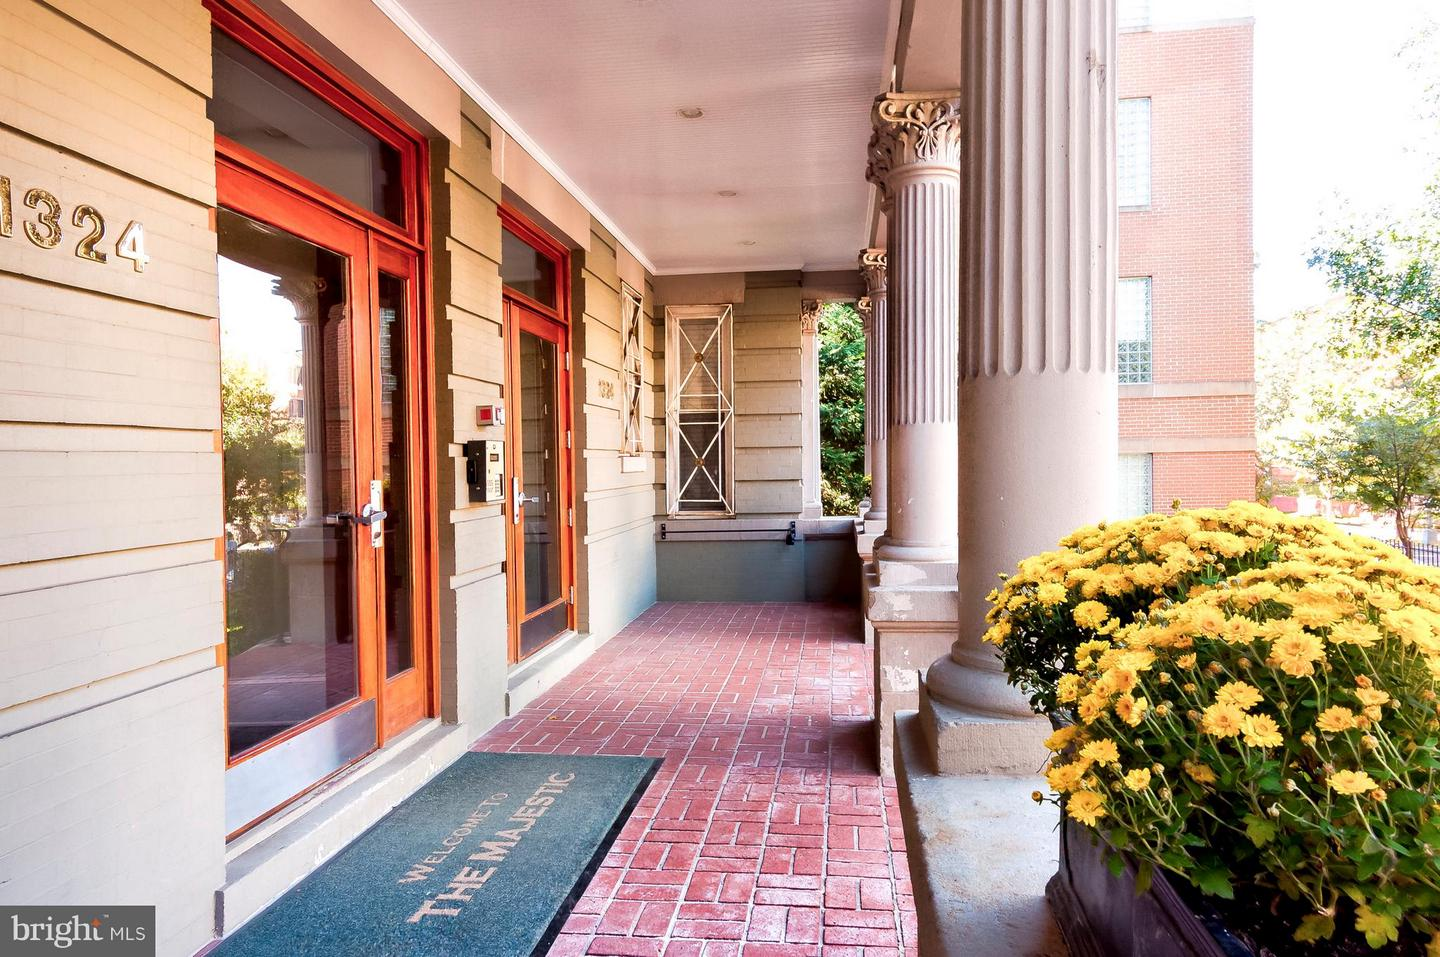 Other Residential for Sale at THE MAJESTIC CONDOMINIUM, 1324 Euclid Street NW Washington, District Of Columbia 20009 United States